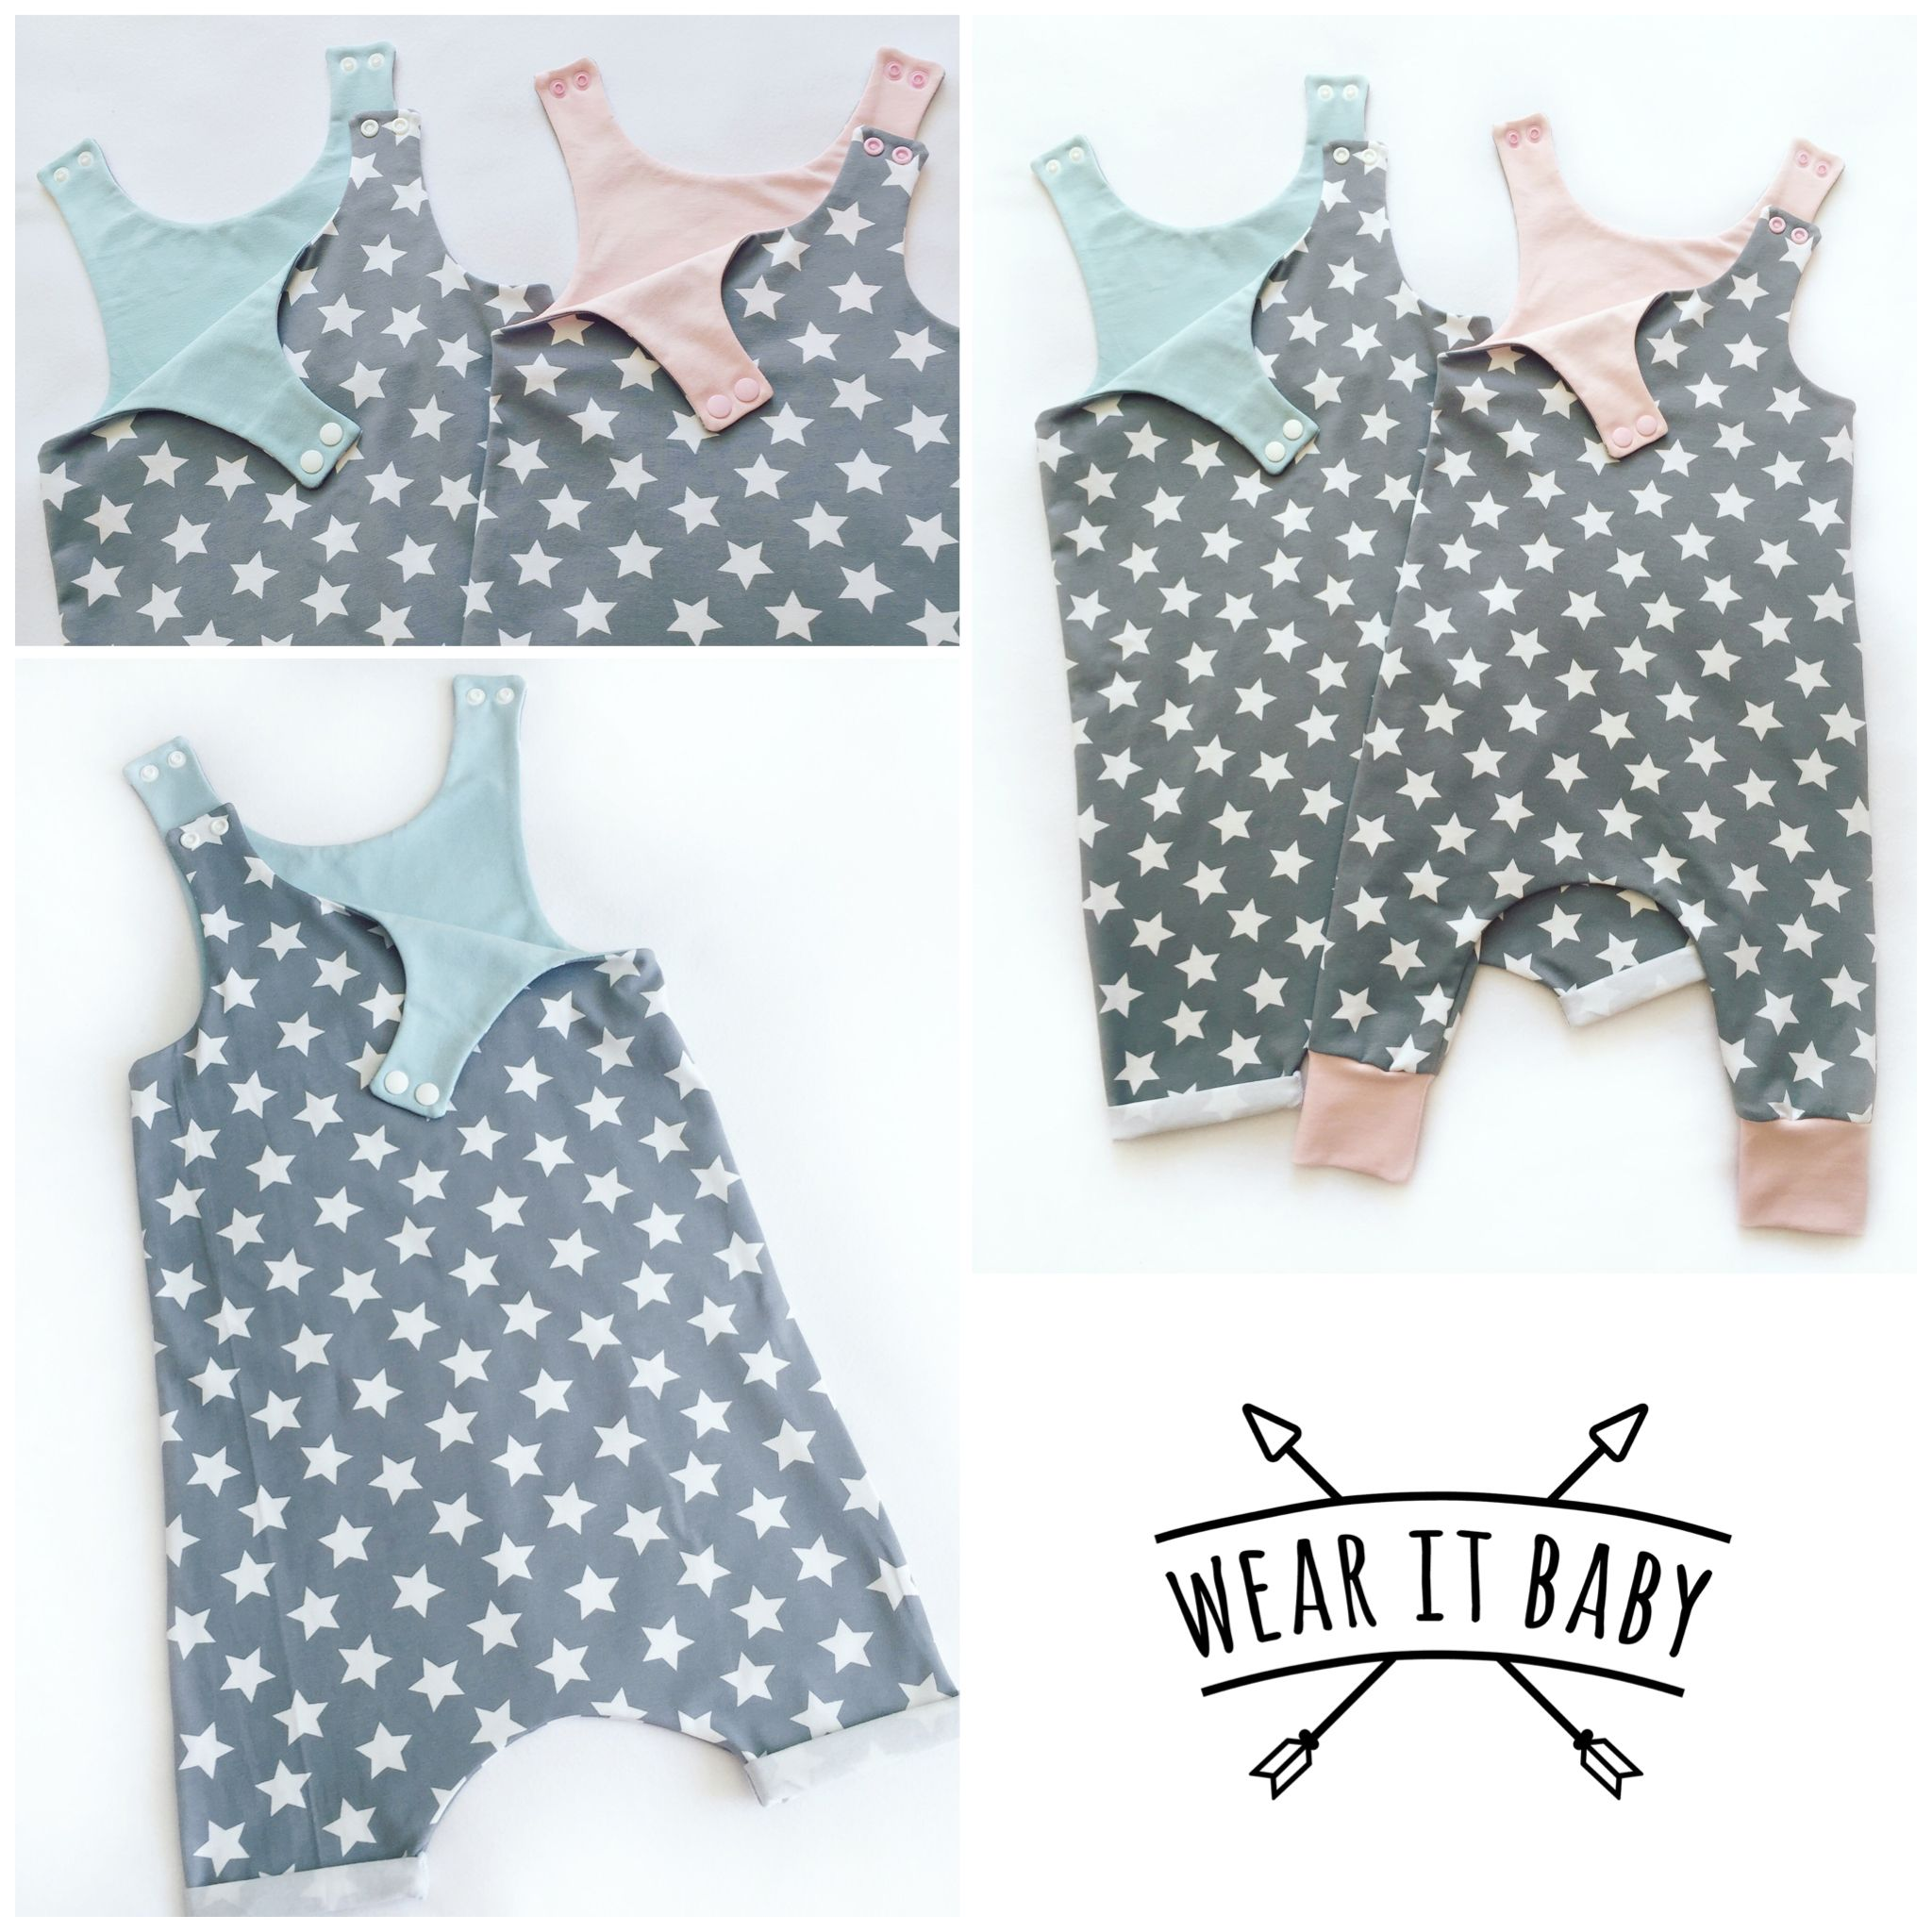 15f0eb59fa20 Unisex Romper By Wear it baby! Perfect for a gender neutral gift www ...